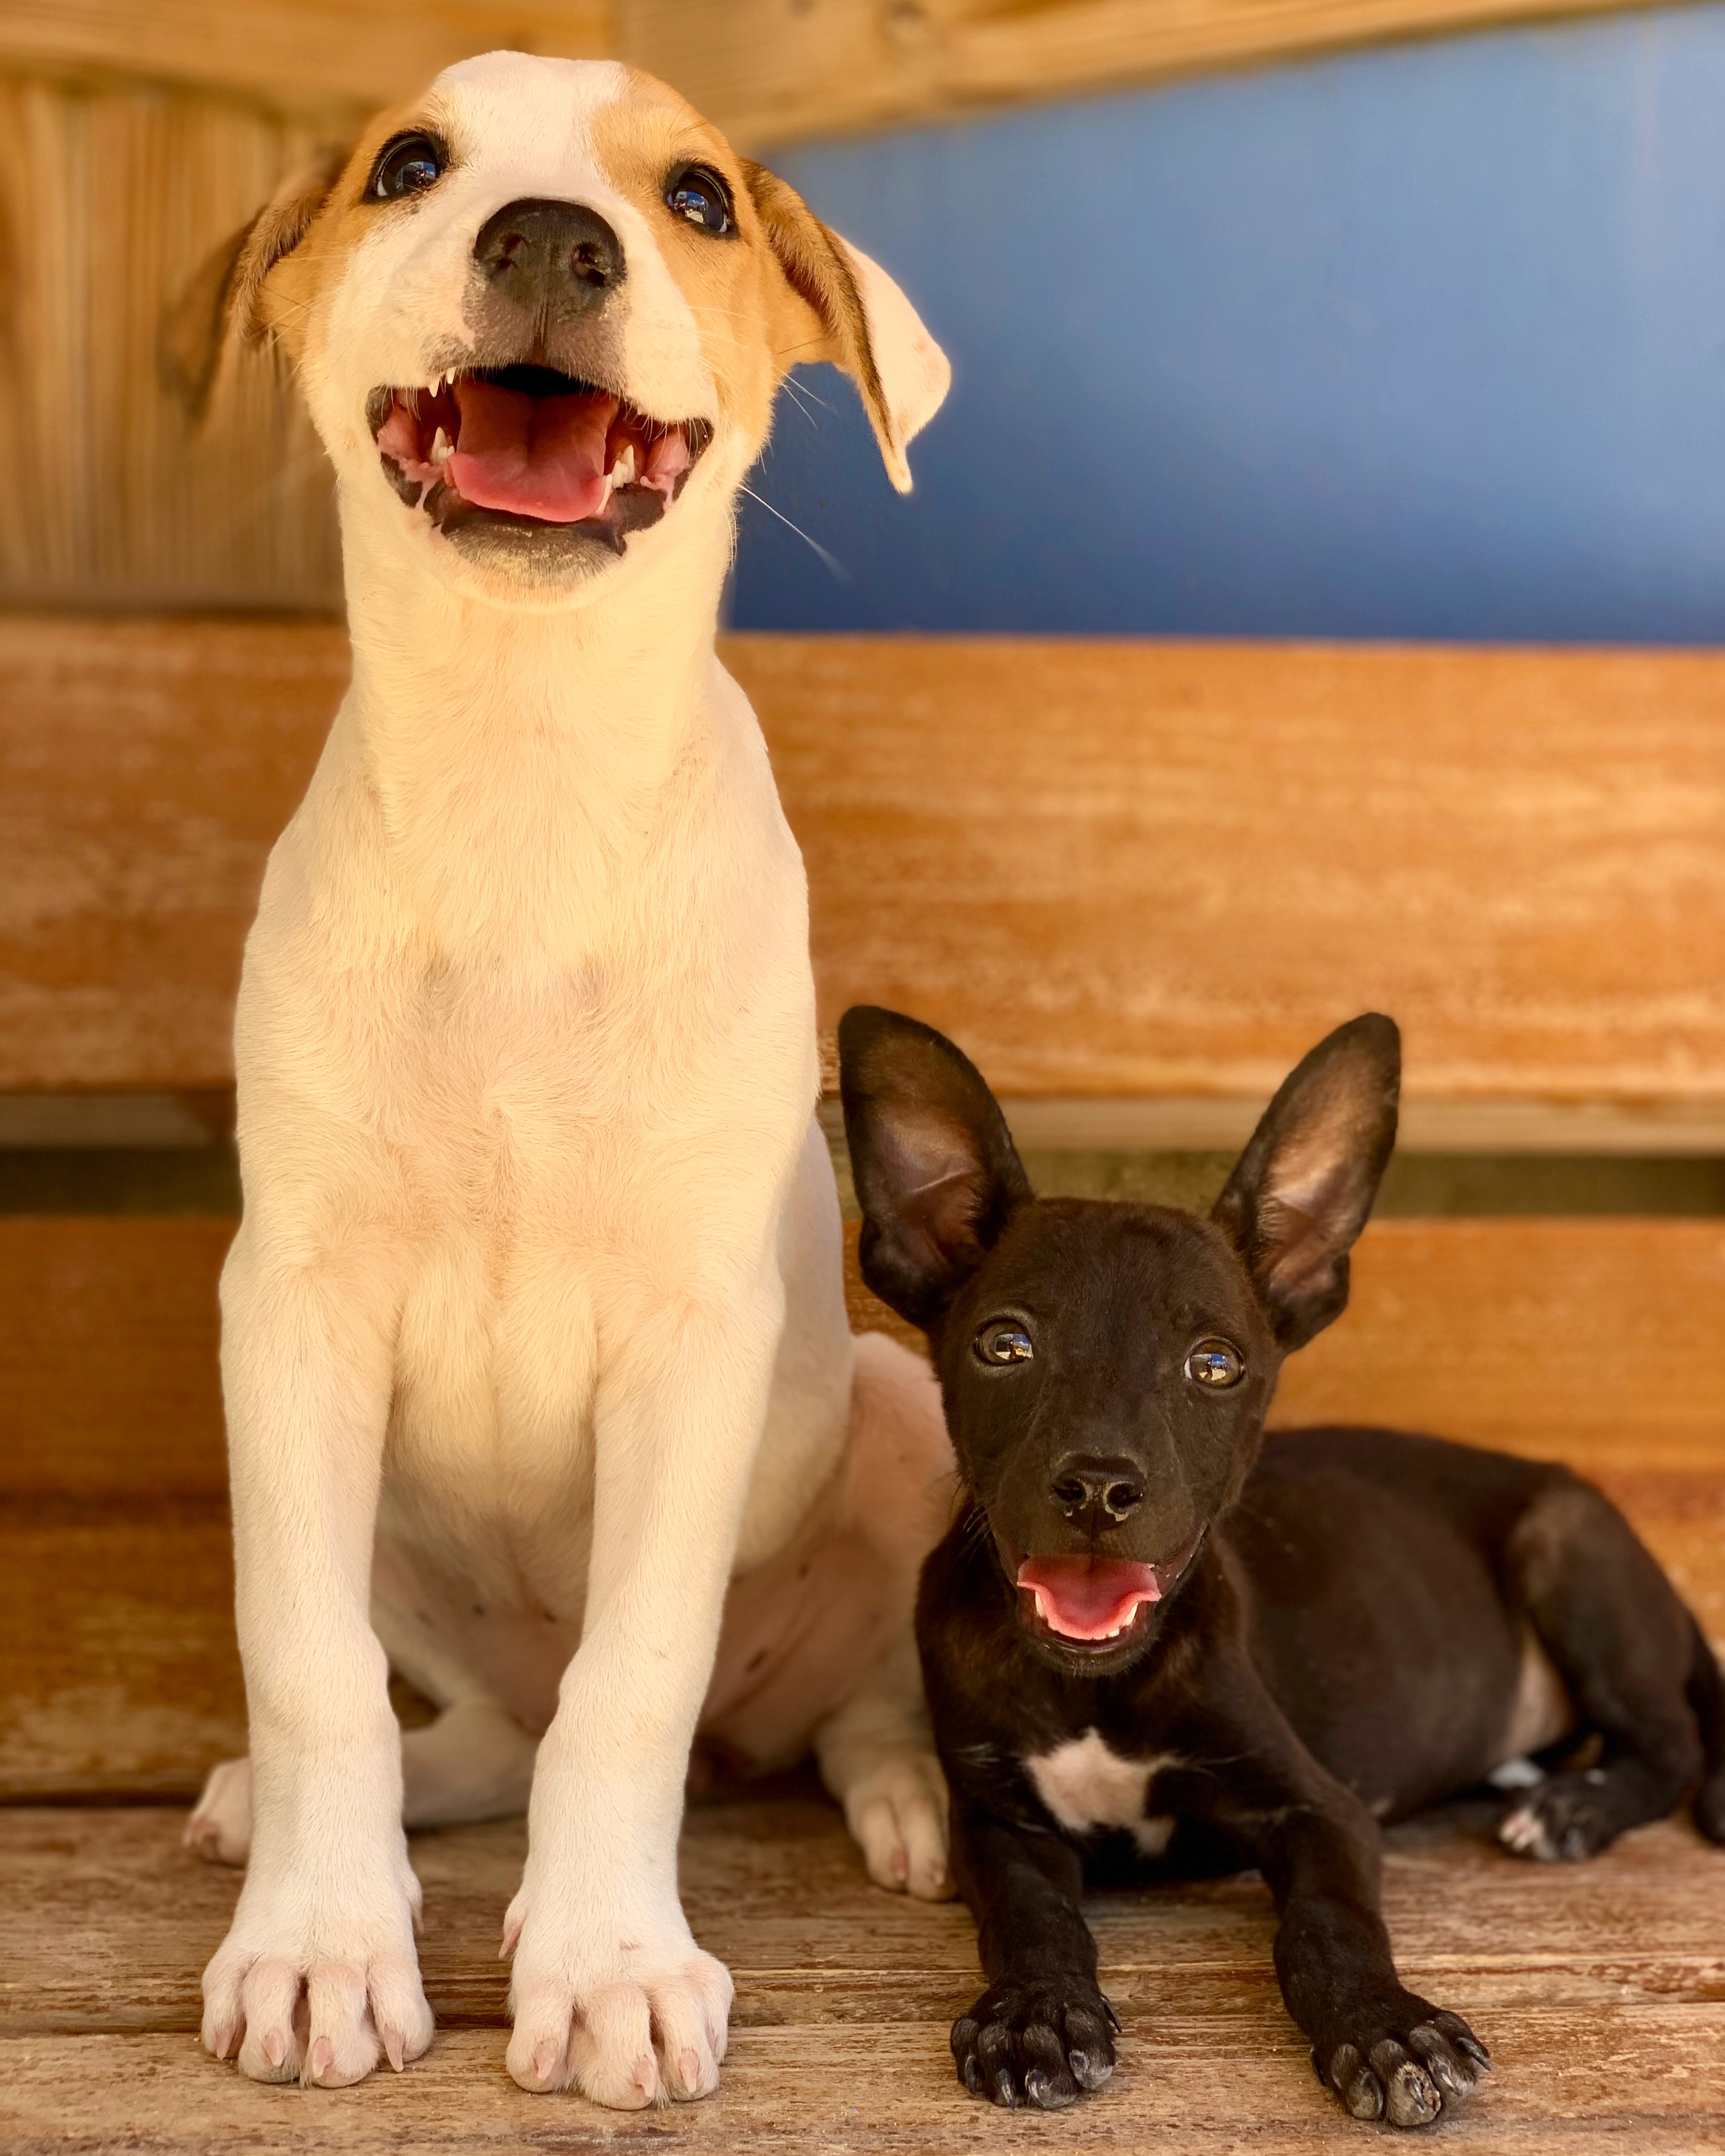 A white and brown puppy sits with a smaller black puppy